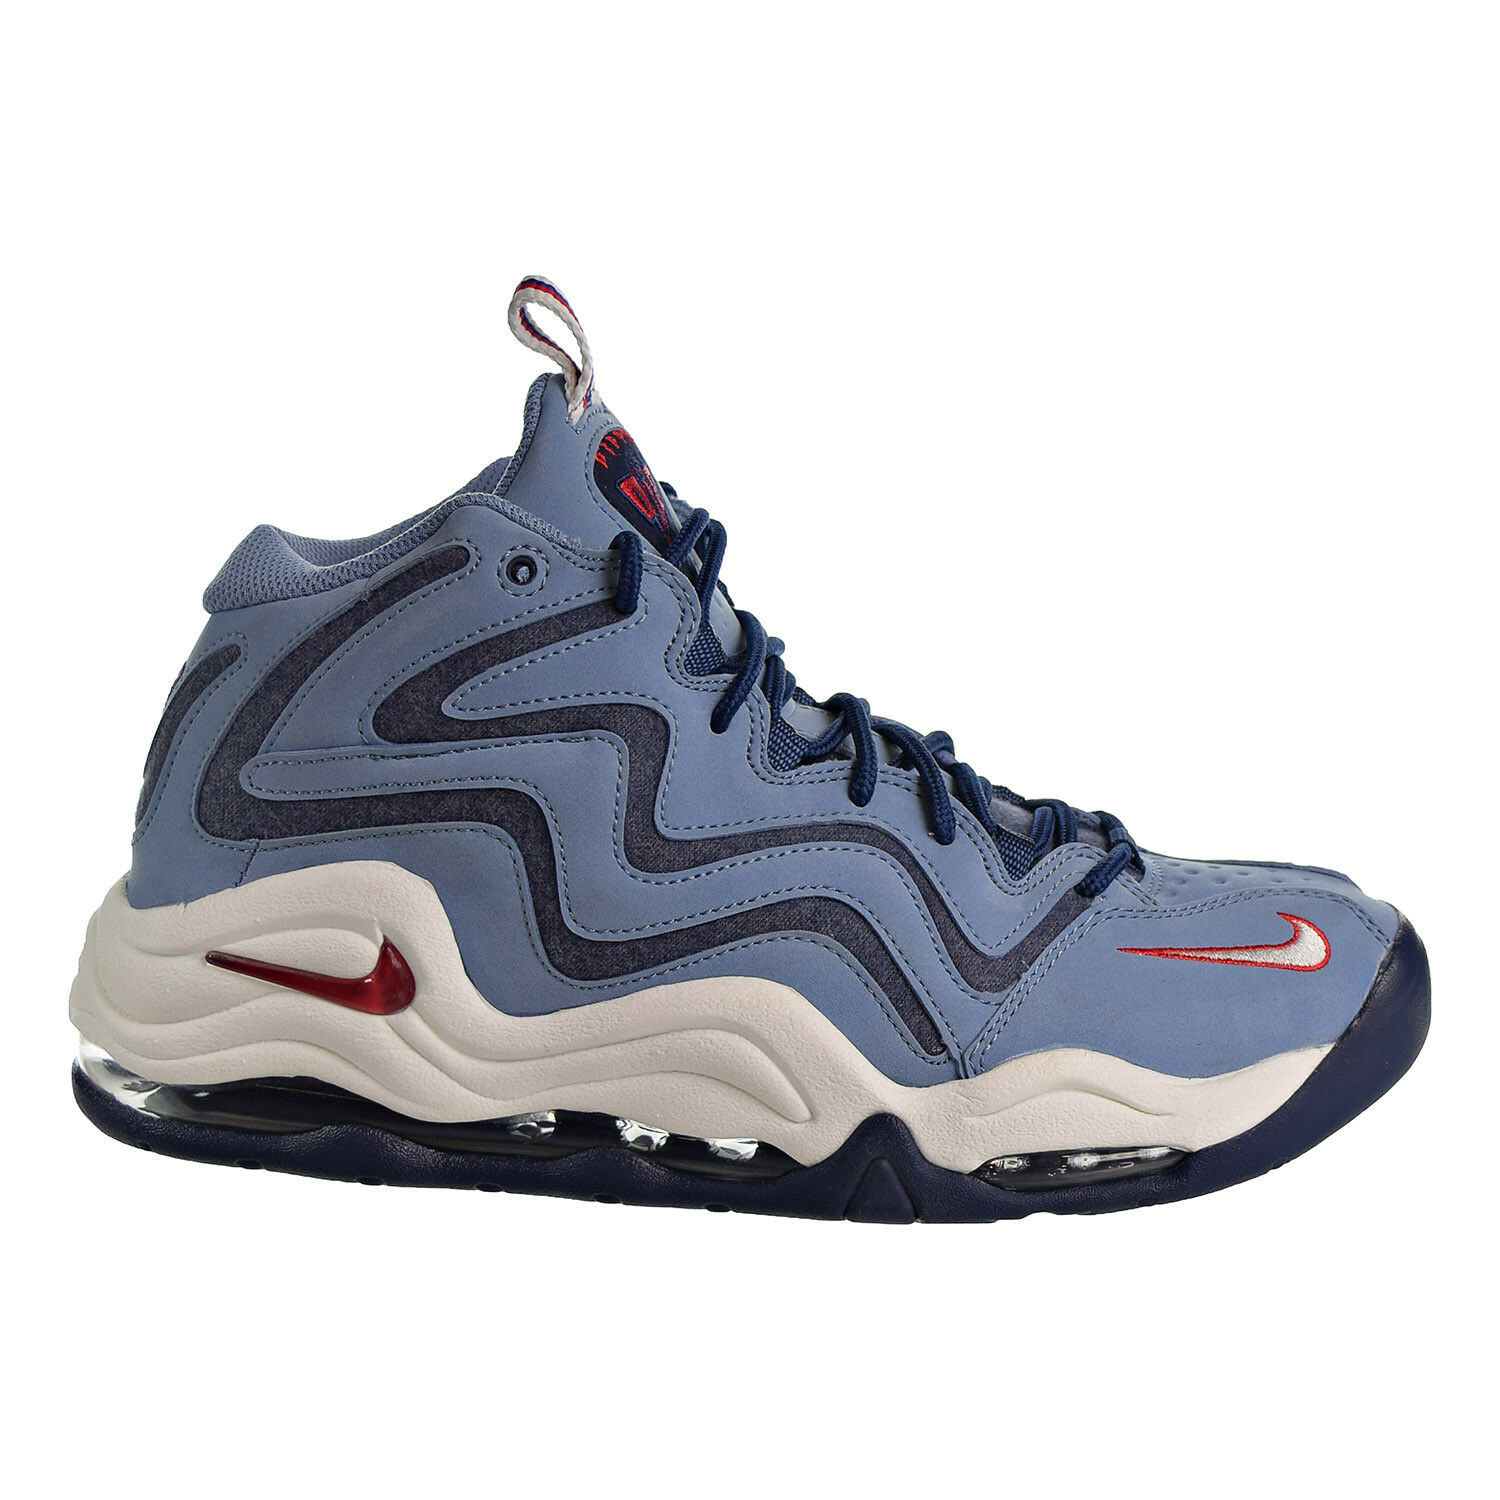 Nike Air Pippen Men's Basketball Shoes Work Blue/University Red 325001-403 Brand discount